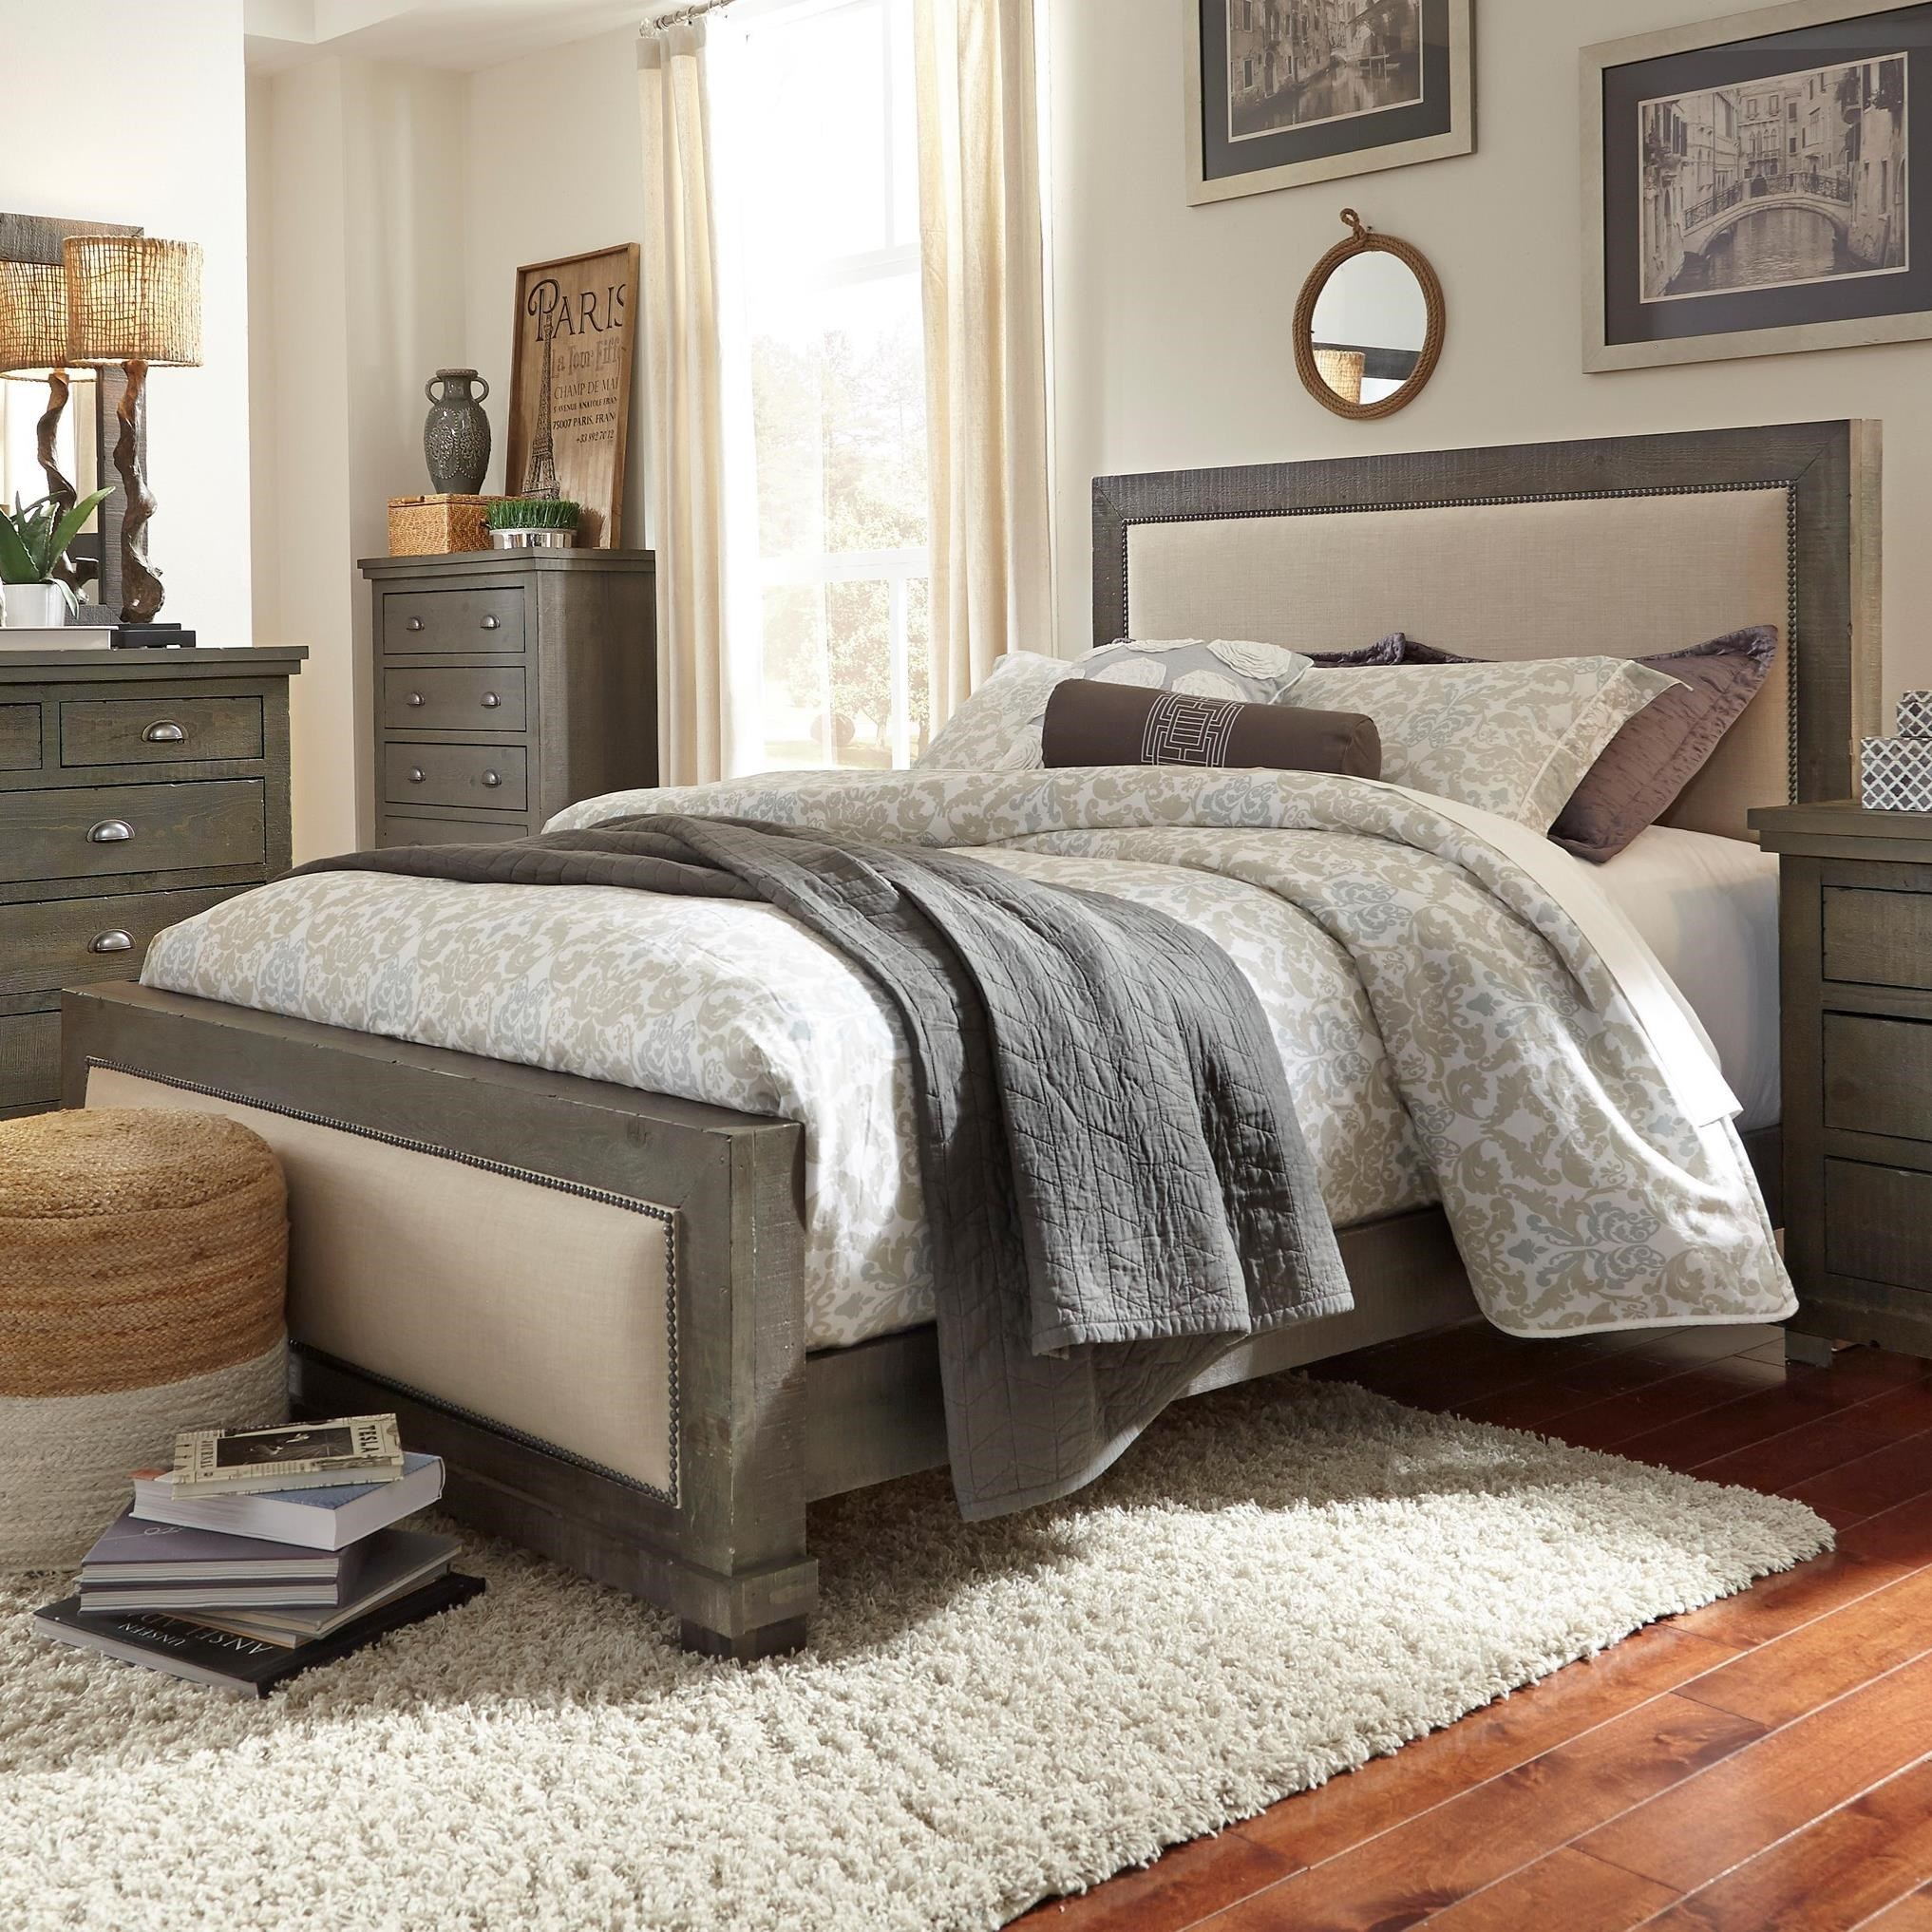 Progressive Furniture Willow Queen Upholstered Bed With Distressed Pine  Frame   Miskelly Furniture   Upholstered Beds